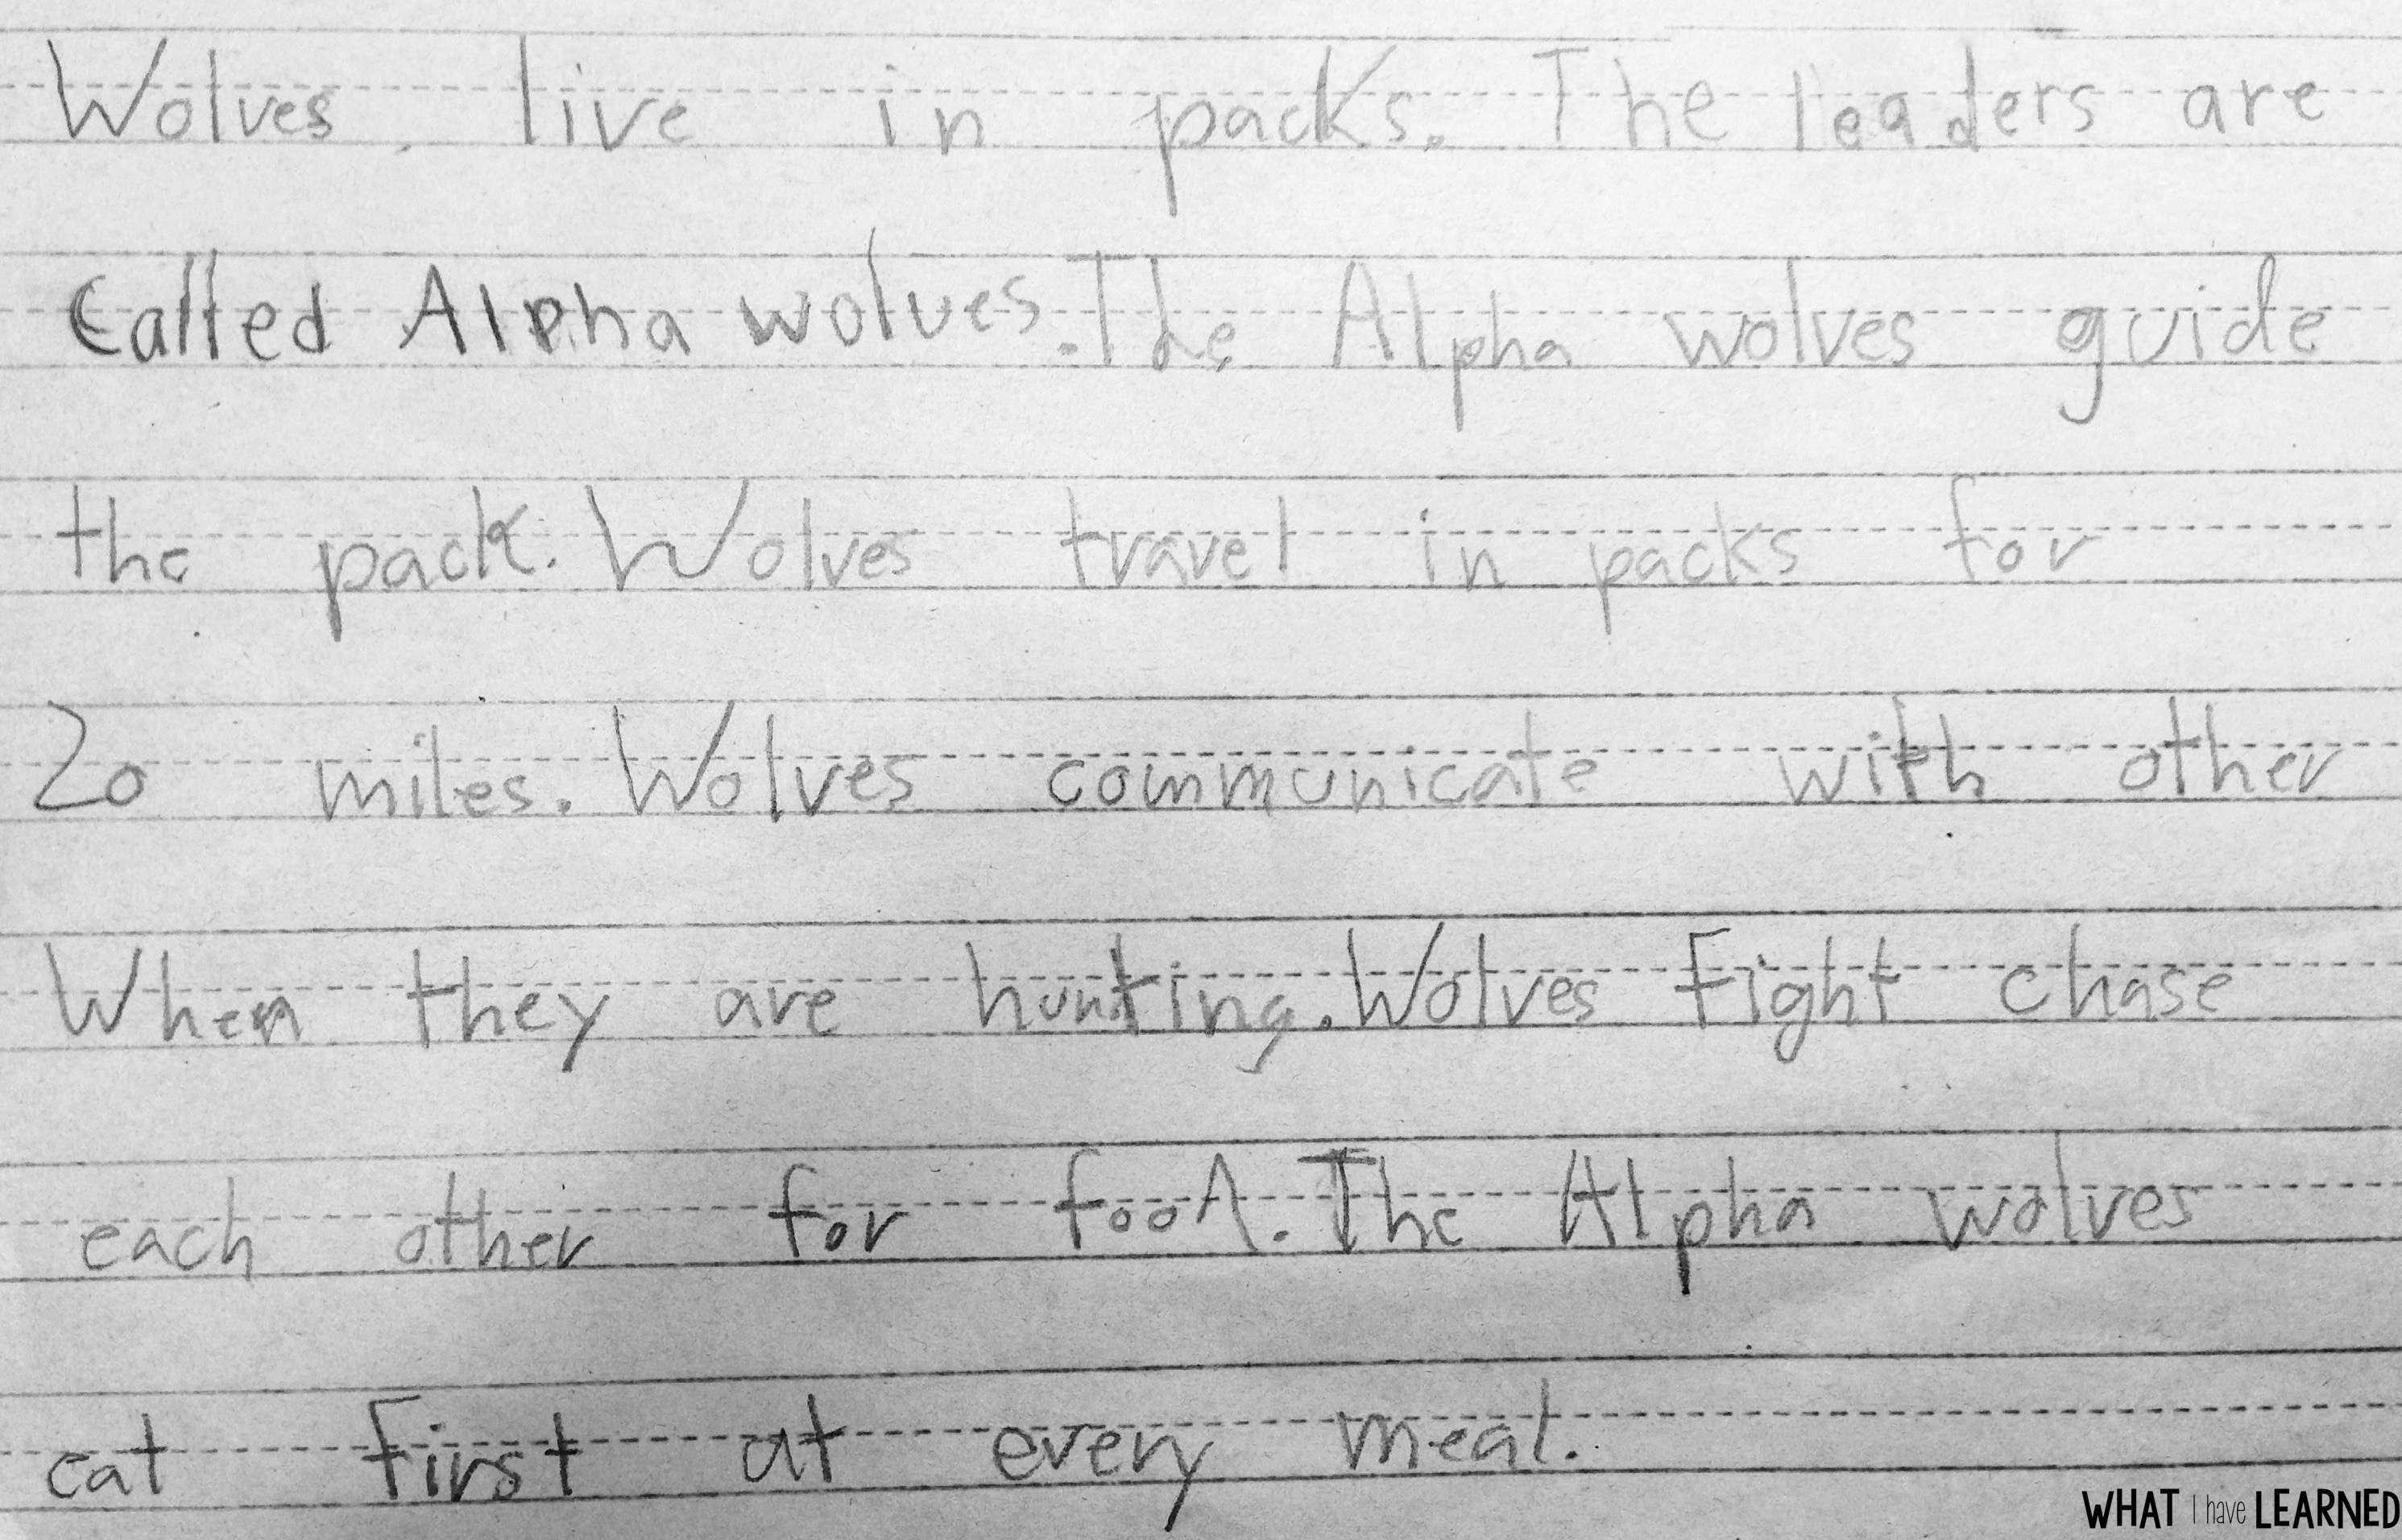 medium resolution of Find Related Facts and Order Facts - Informational Writing: Week 3 - Wolves